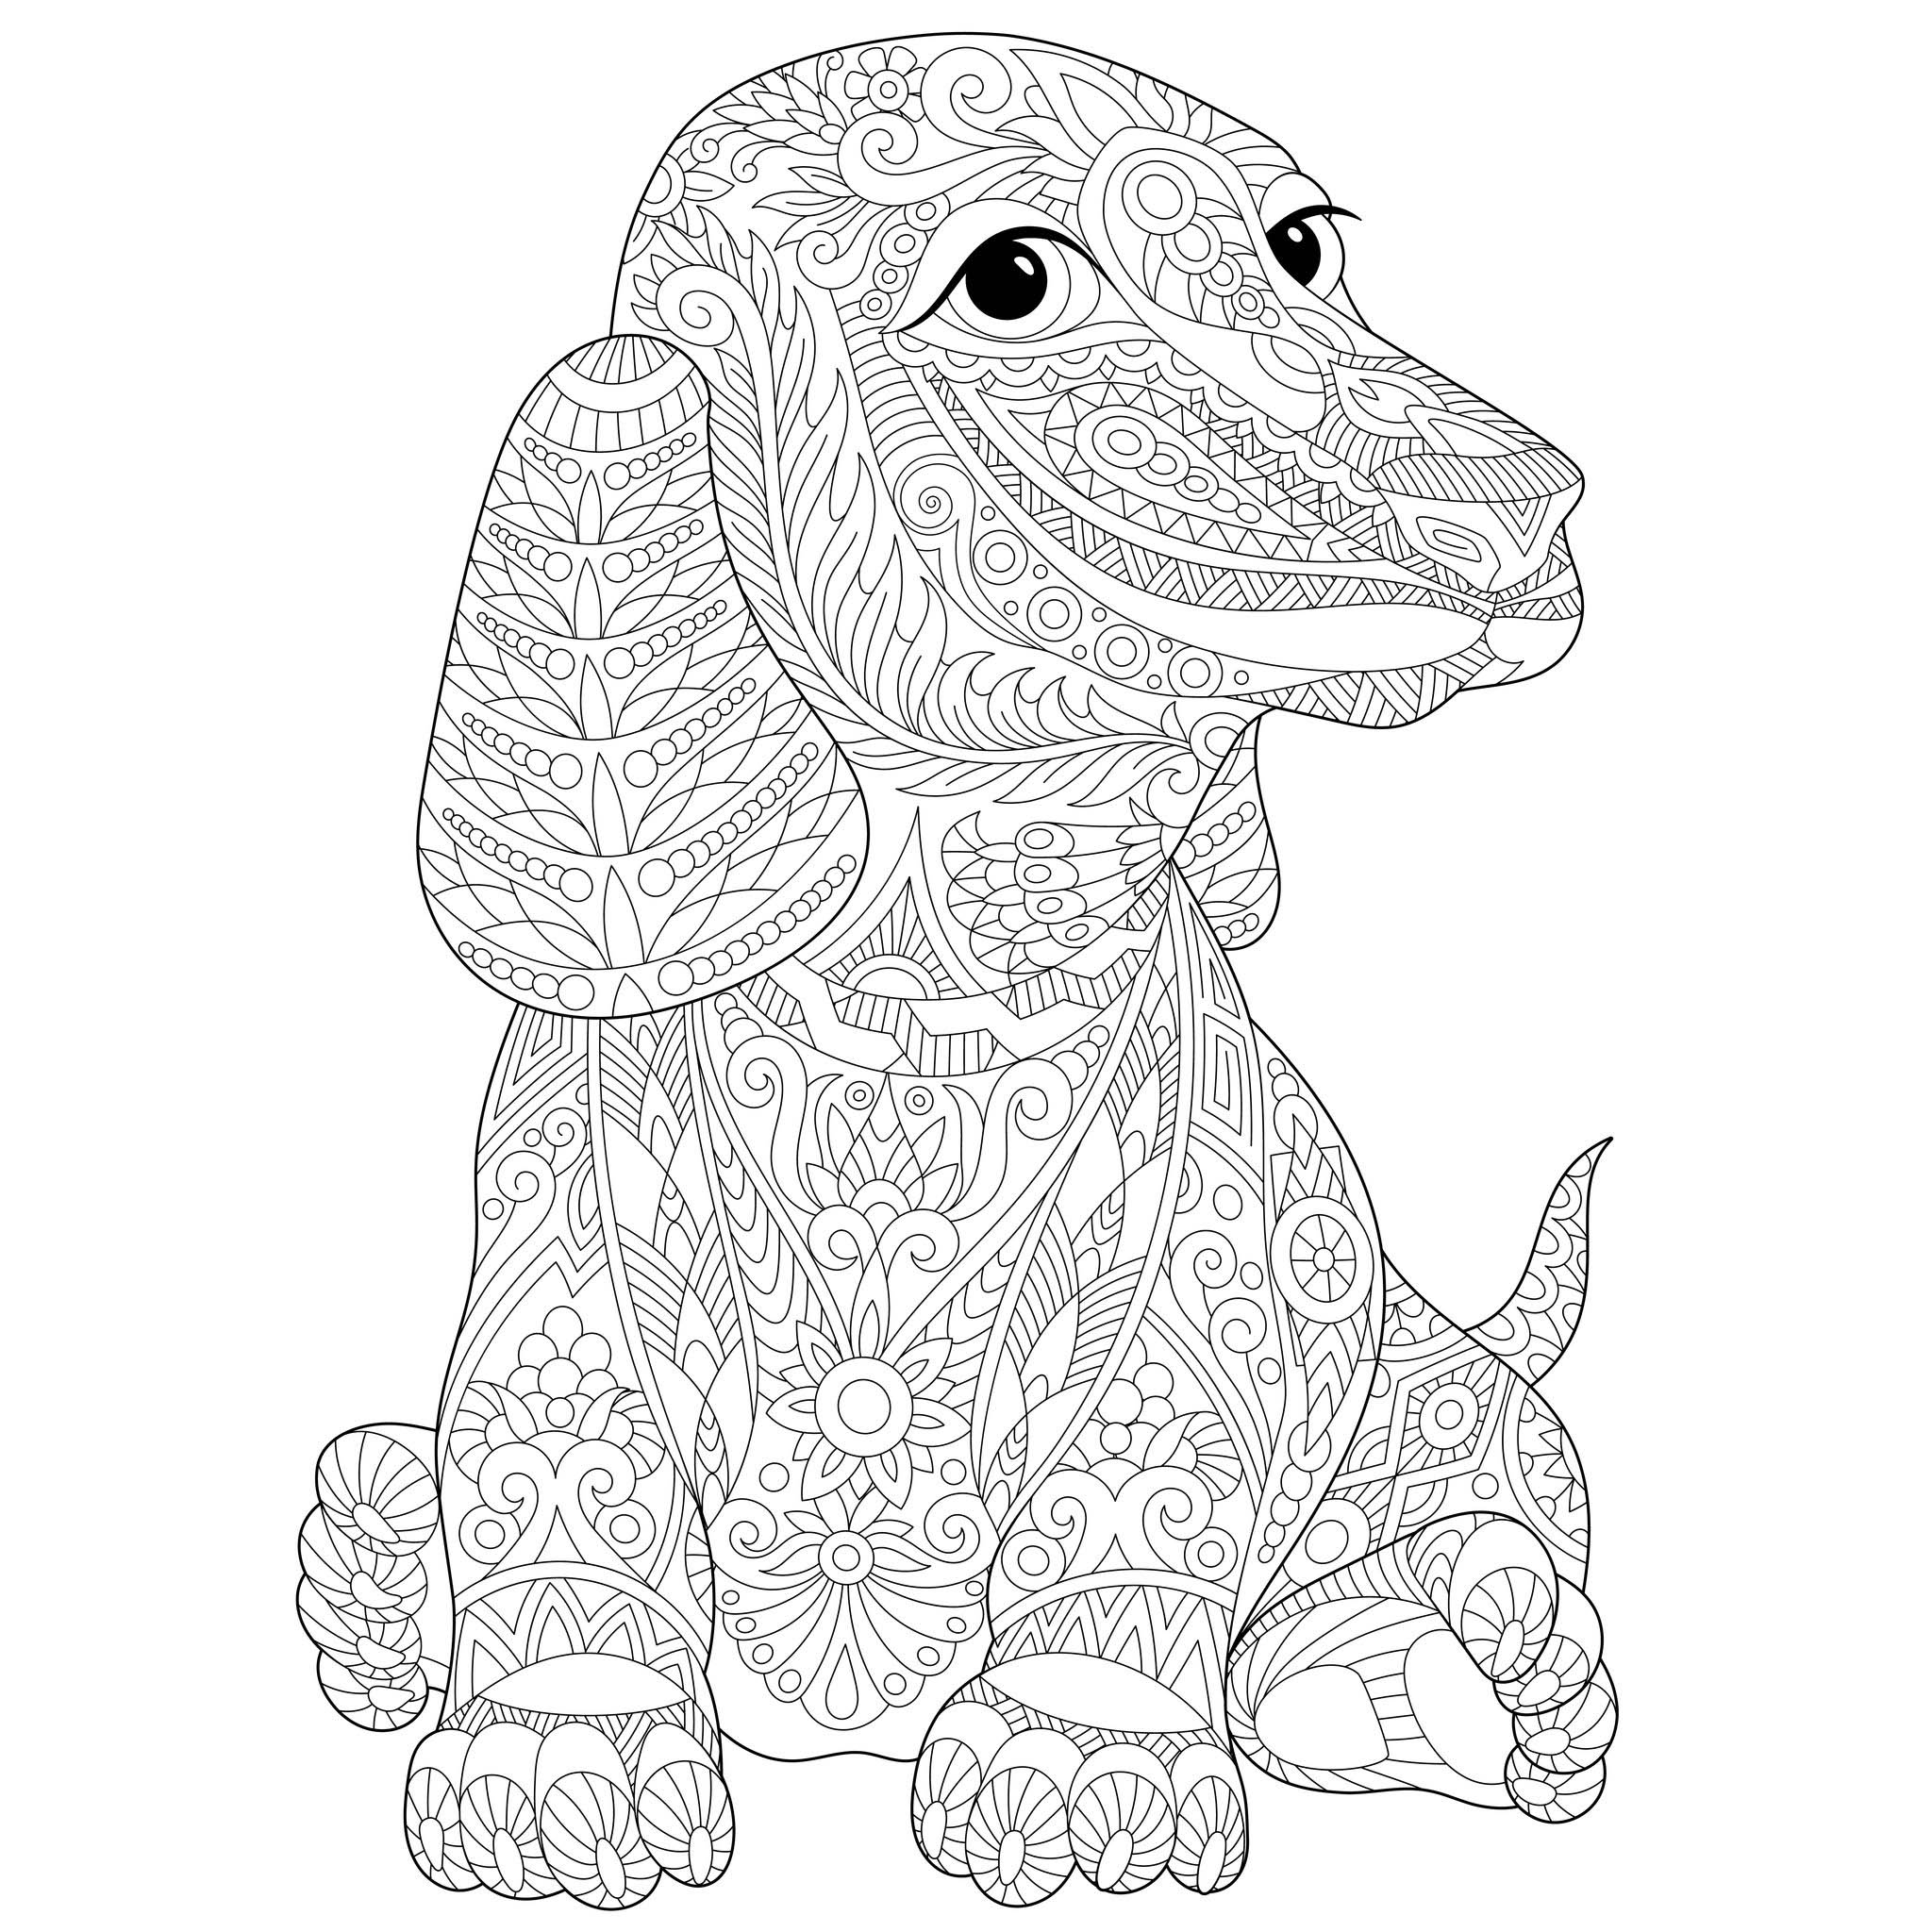 dogs coloring pictures free printable puppies coloring pages for kids pictures dogs coloring